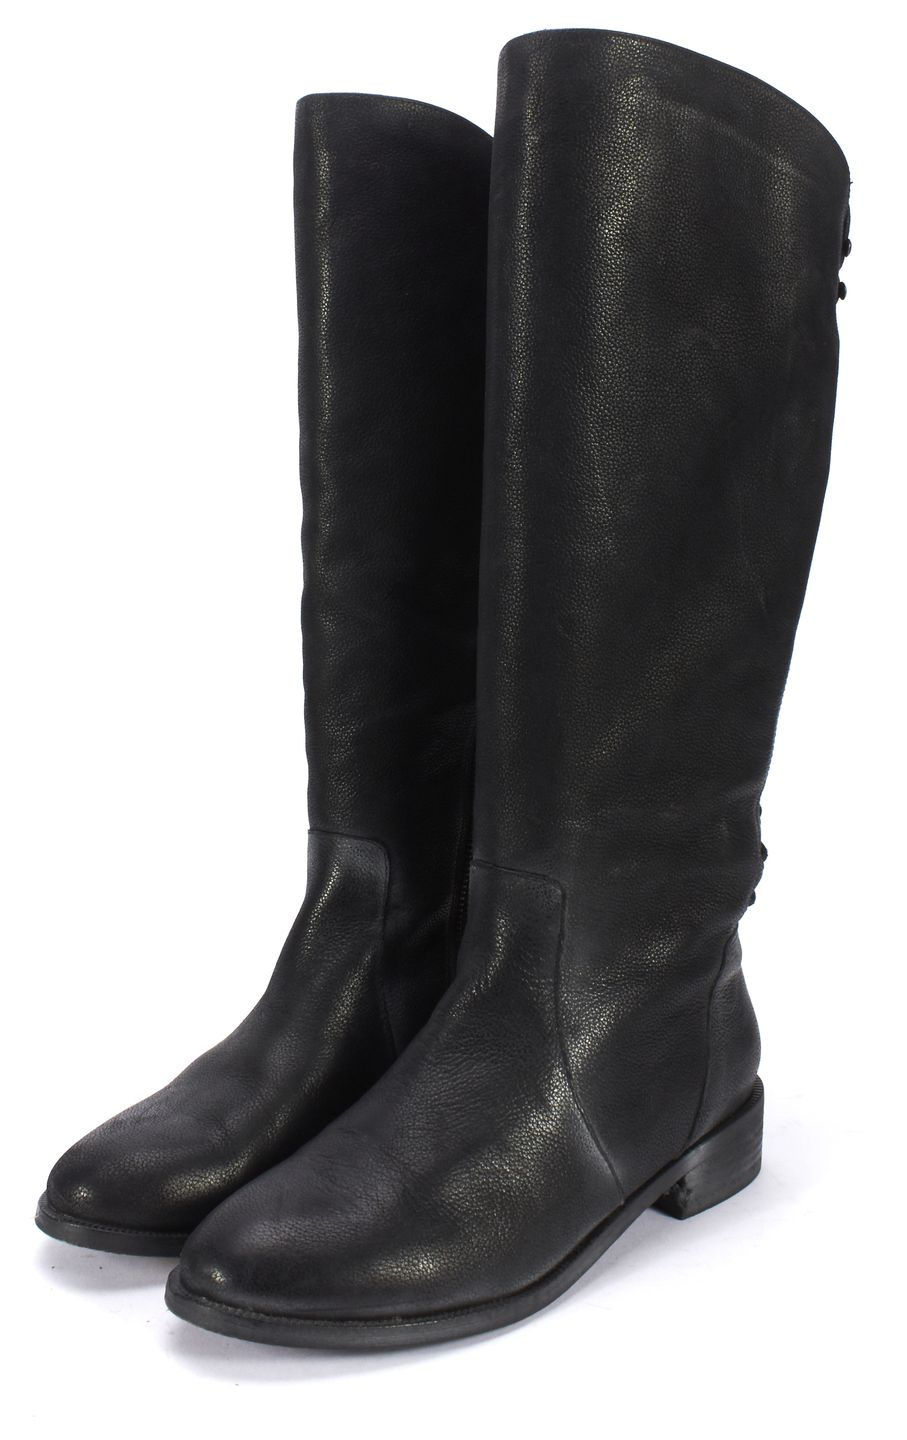 Joie Black Leather Back Lace Up Knee High Riding Boots | Material ...